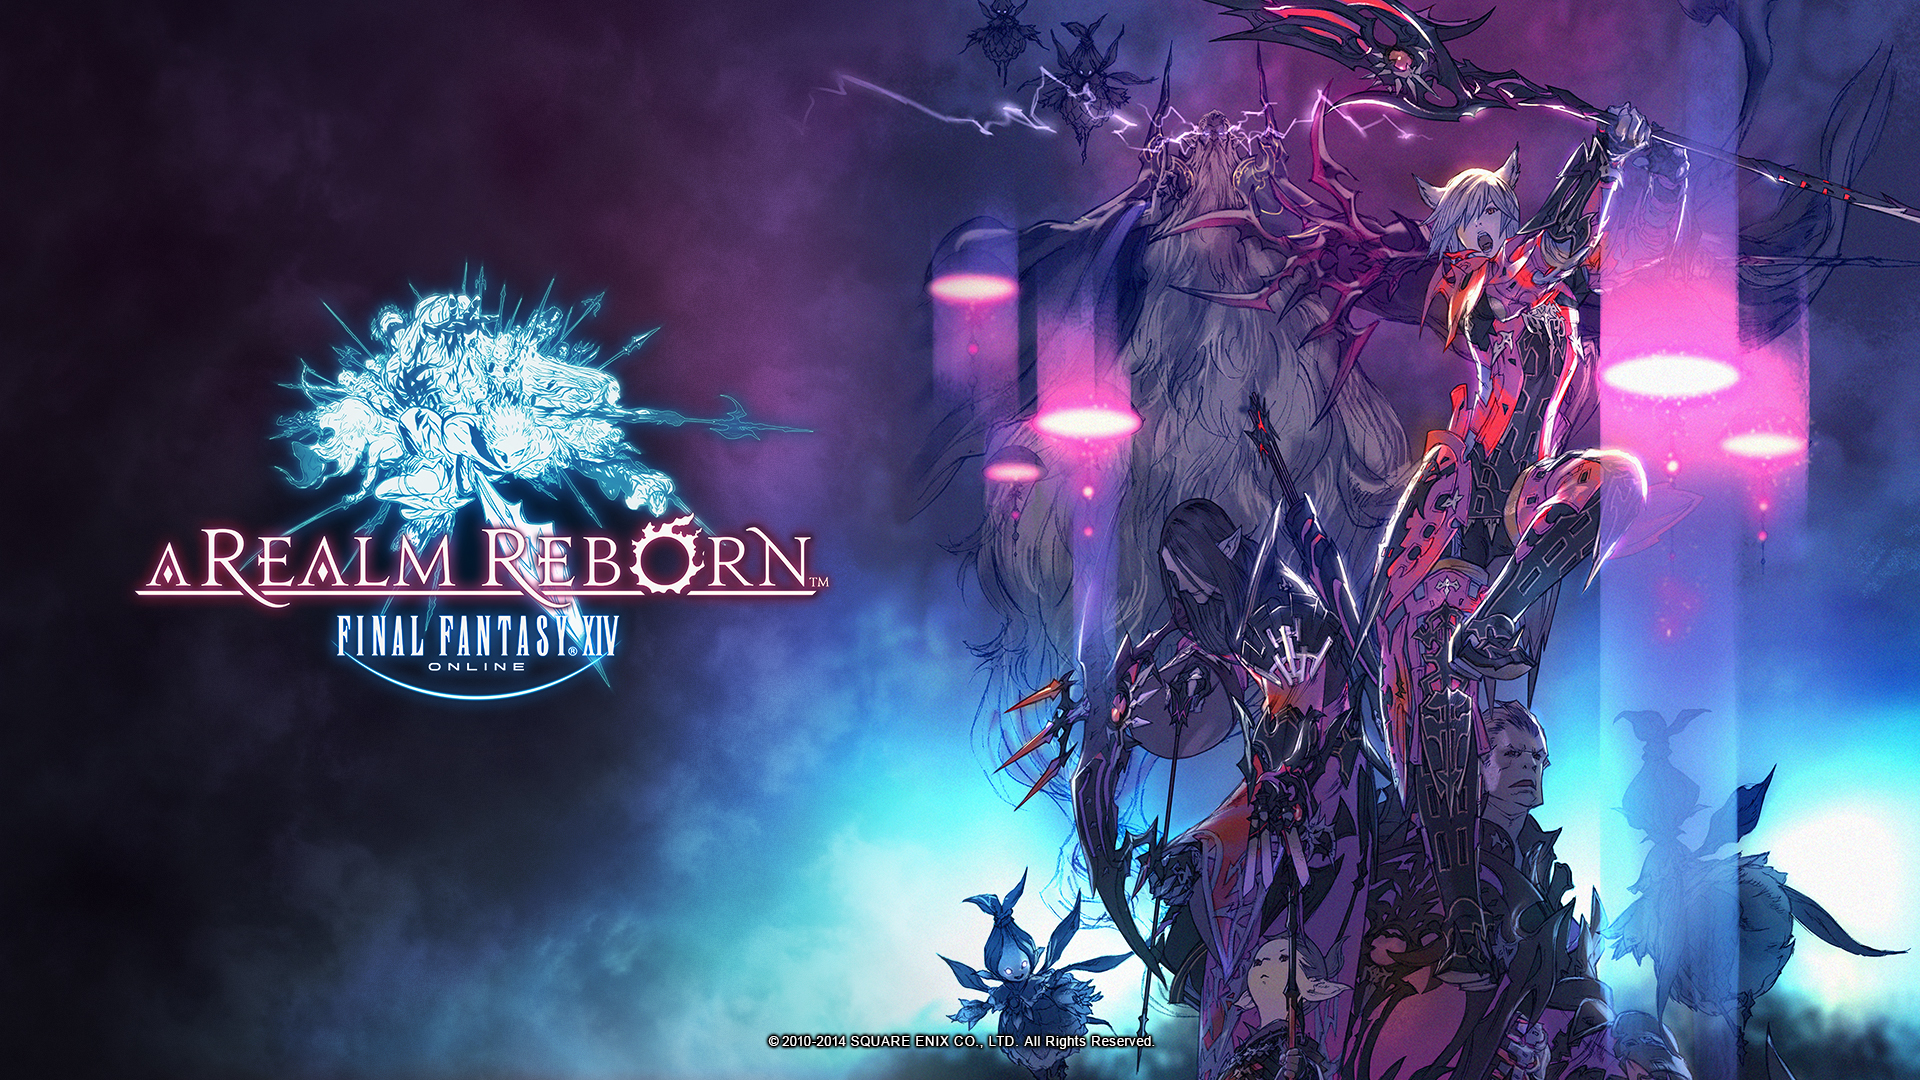 Final Fantasy XIV Gets New Artwork New Letter From The Producer Live On Future Of The Game